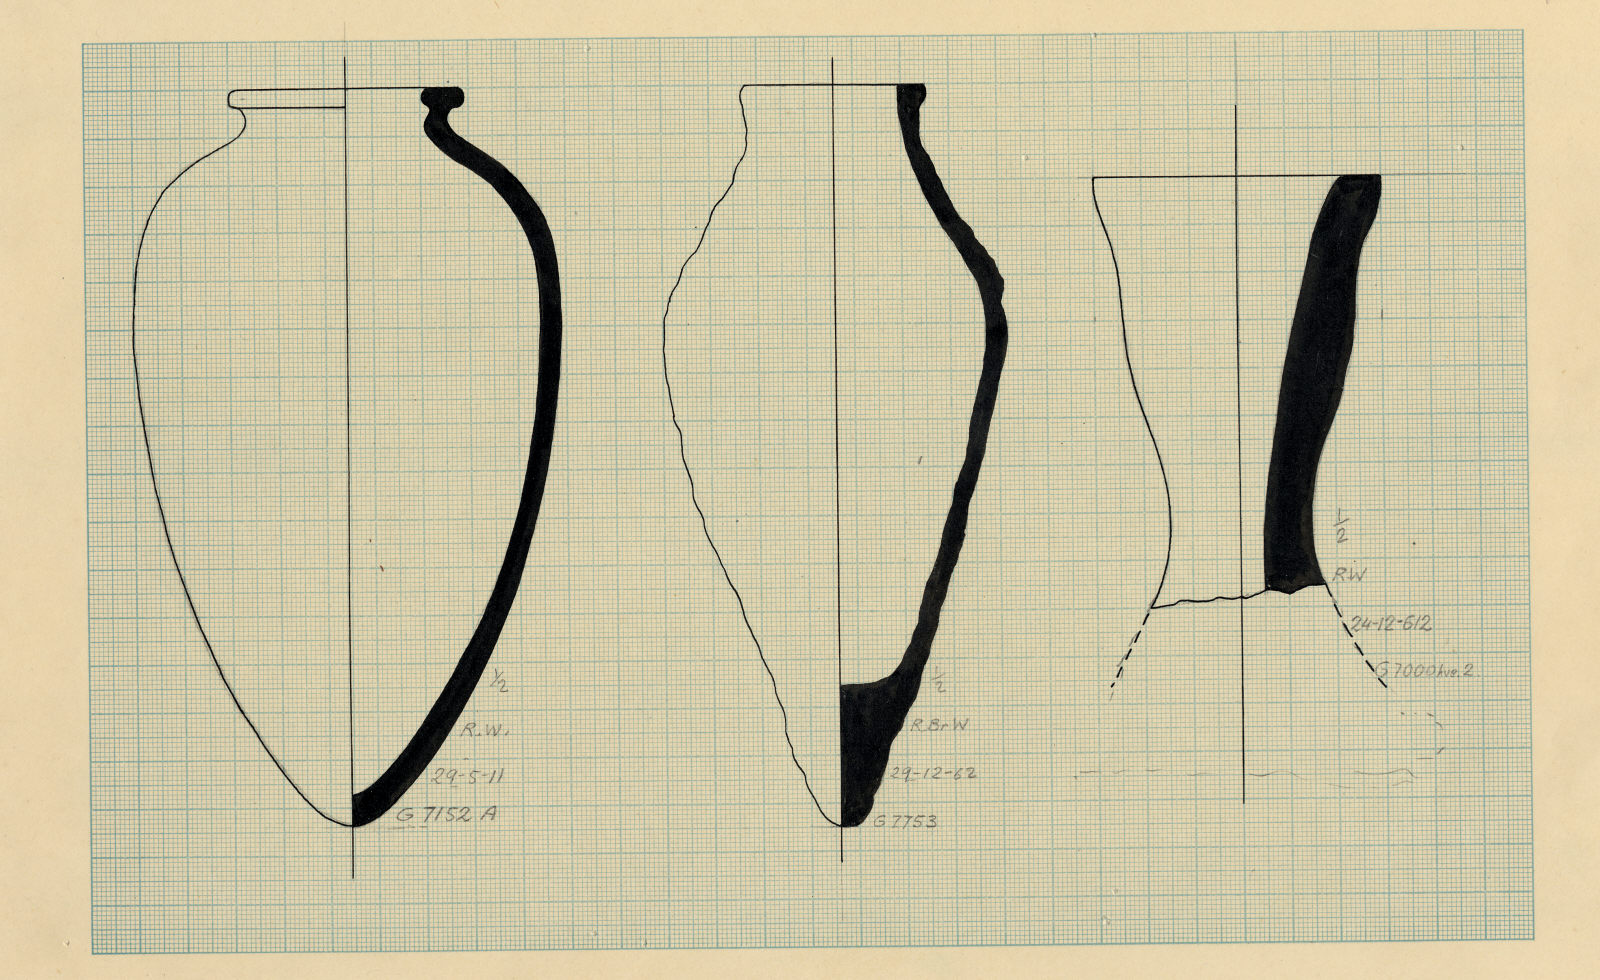 Drawings: Pottery from Avenue G 2, between G 7120 and G 7130; G 7152, Shaft A; G 7753